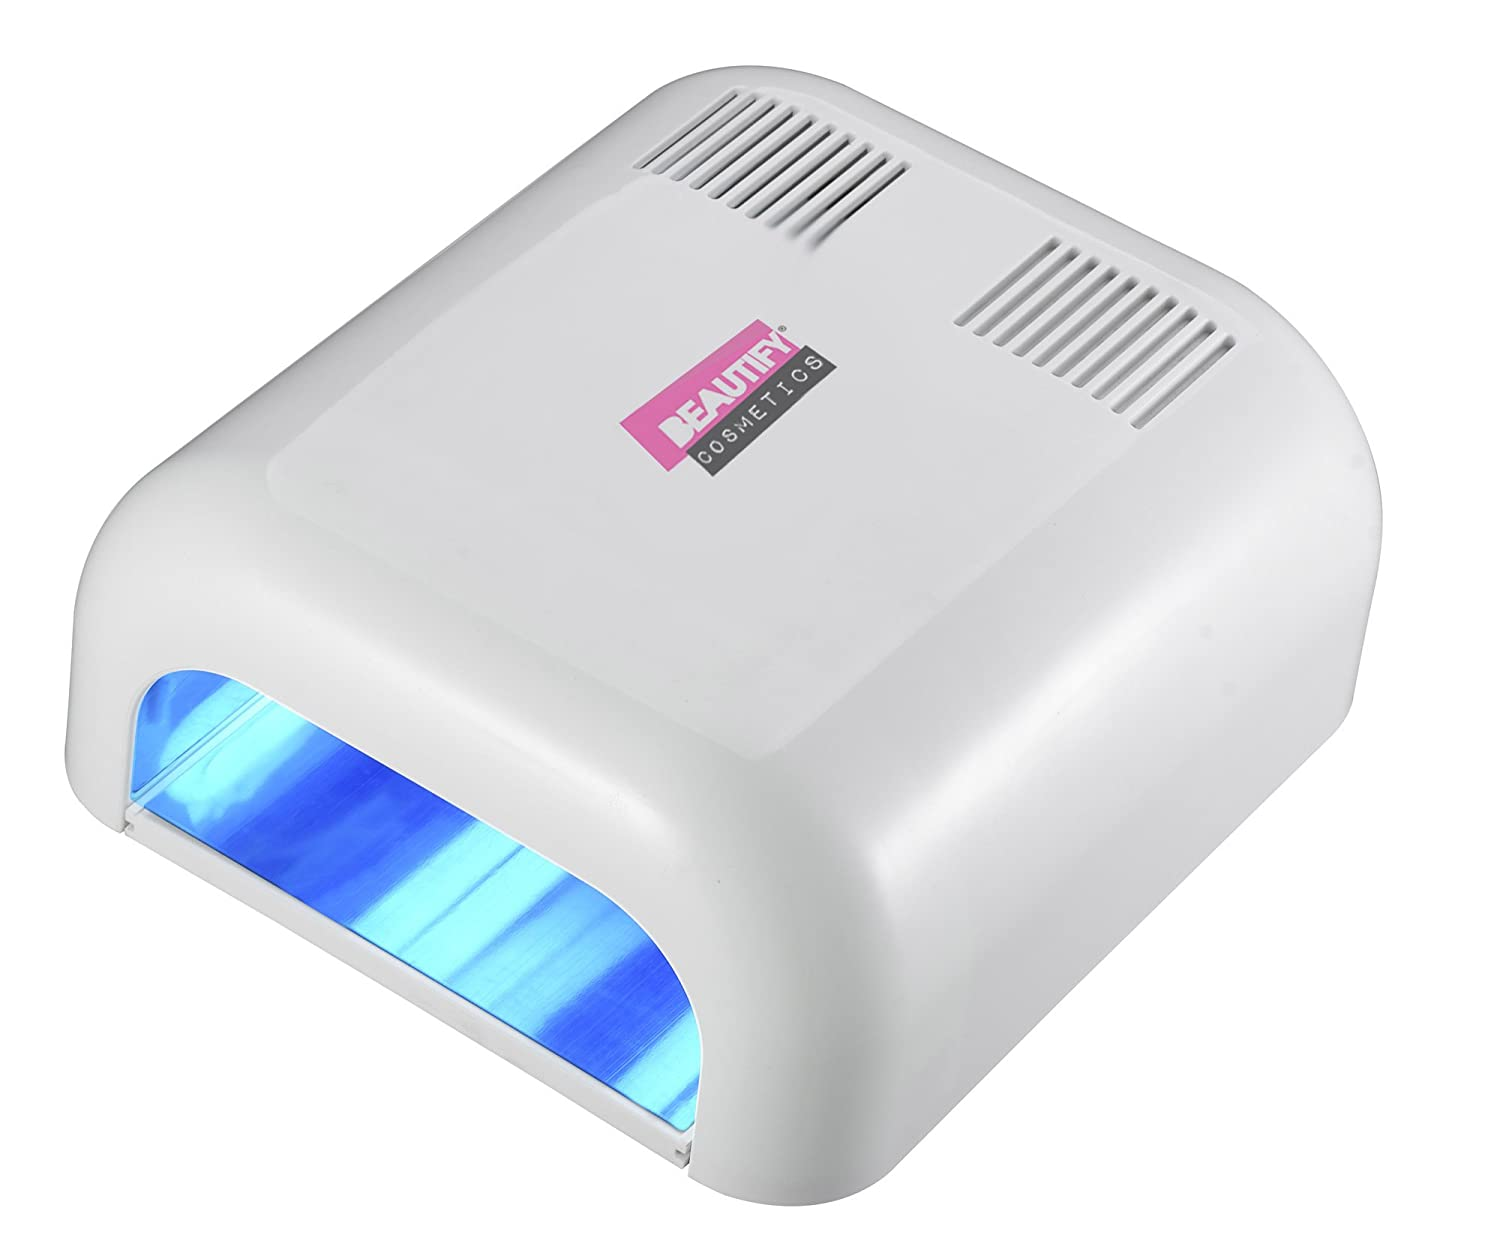 Curing Dryer Beautify Curing4x Uv Nail 9w 36w Light Lamp Bulbs Gel 7gY6vIbfy